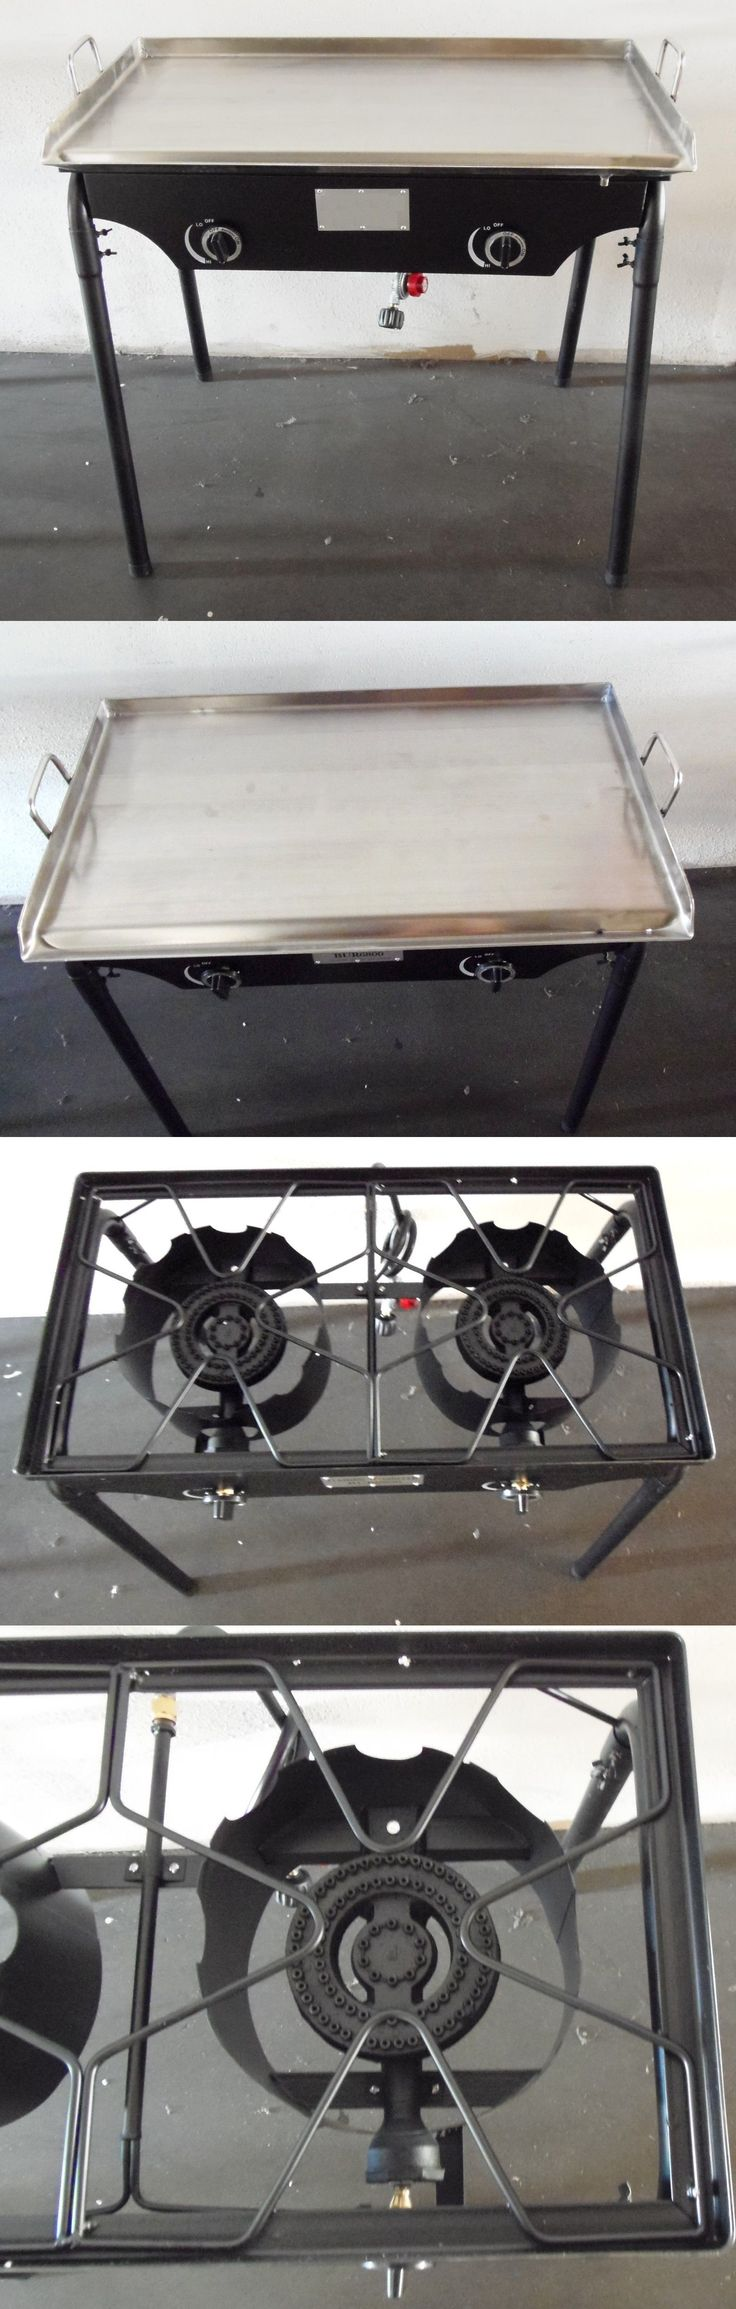 Flat Top Stove Prices